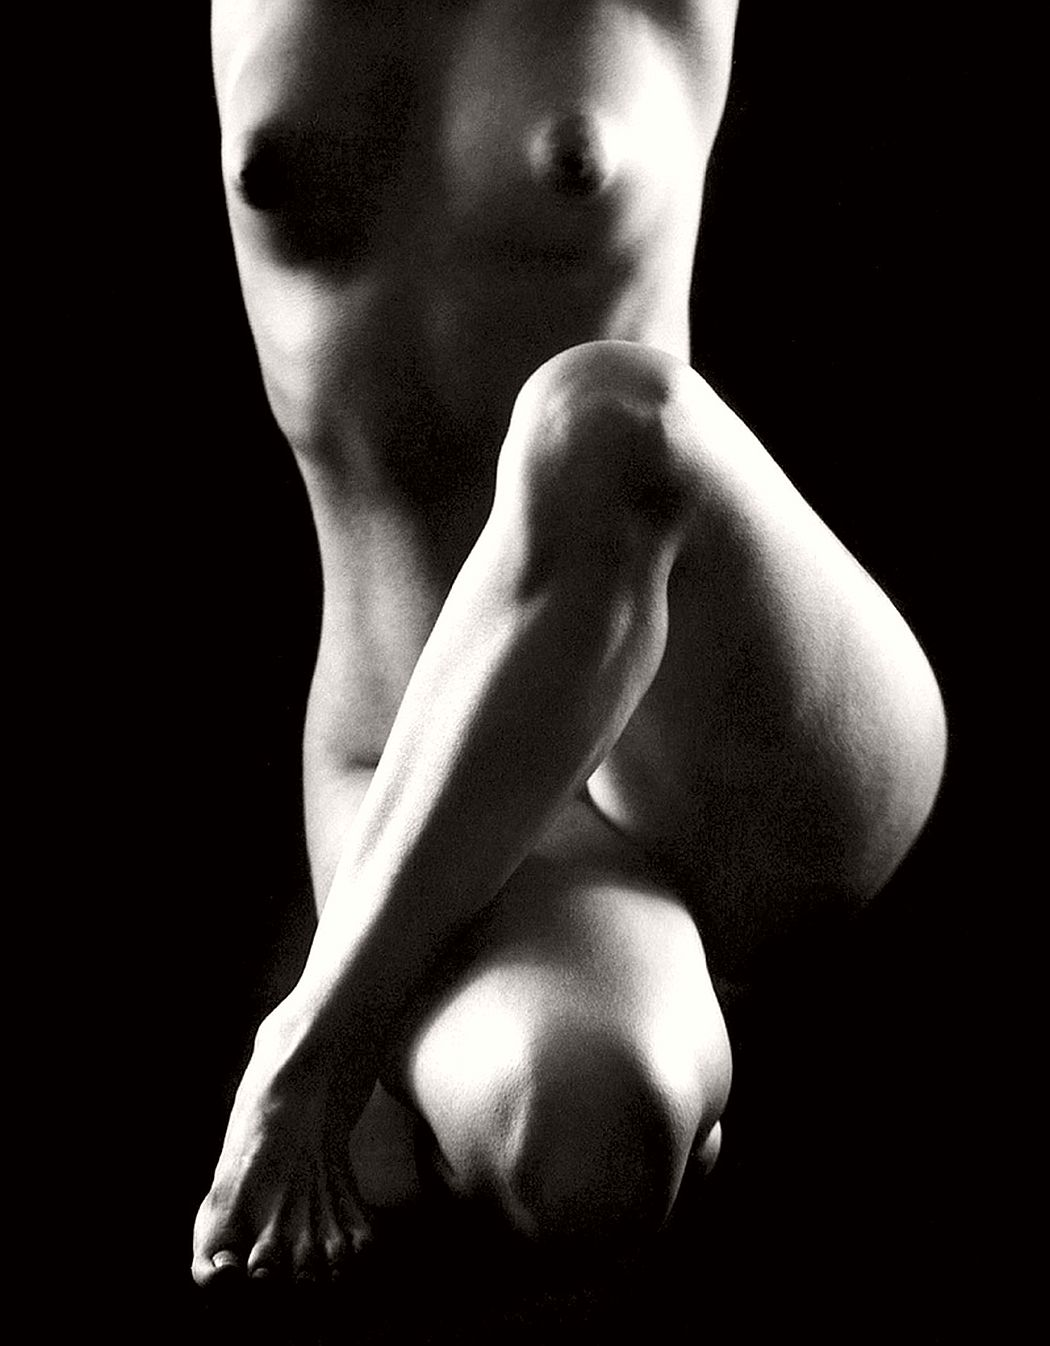 nude-photographer-ruth-bernhard-04